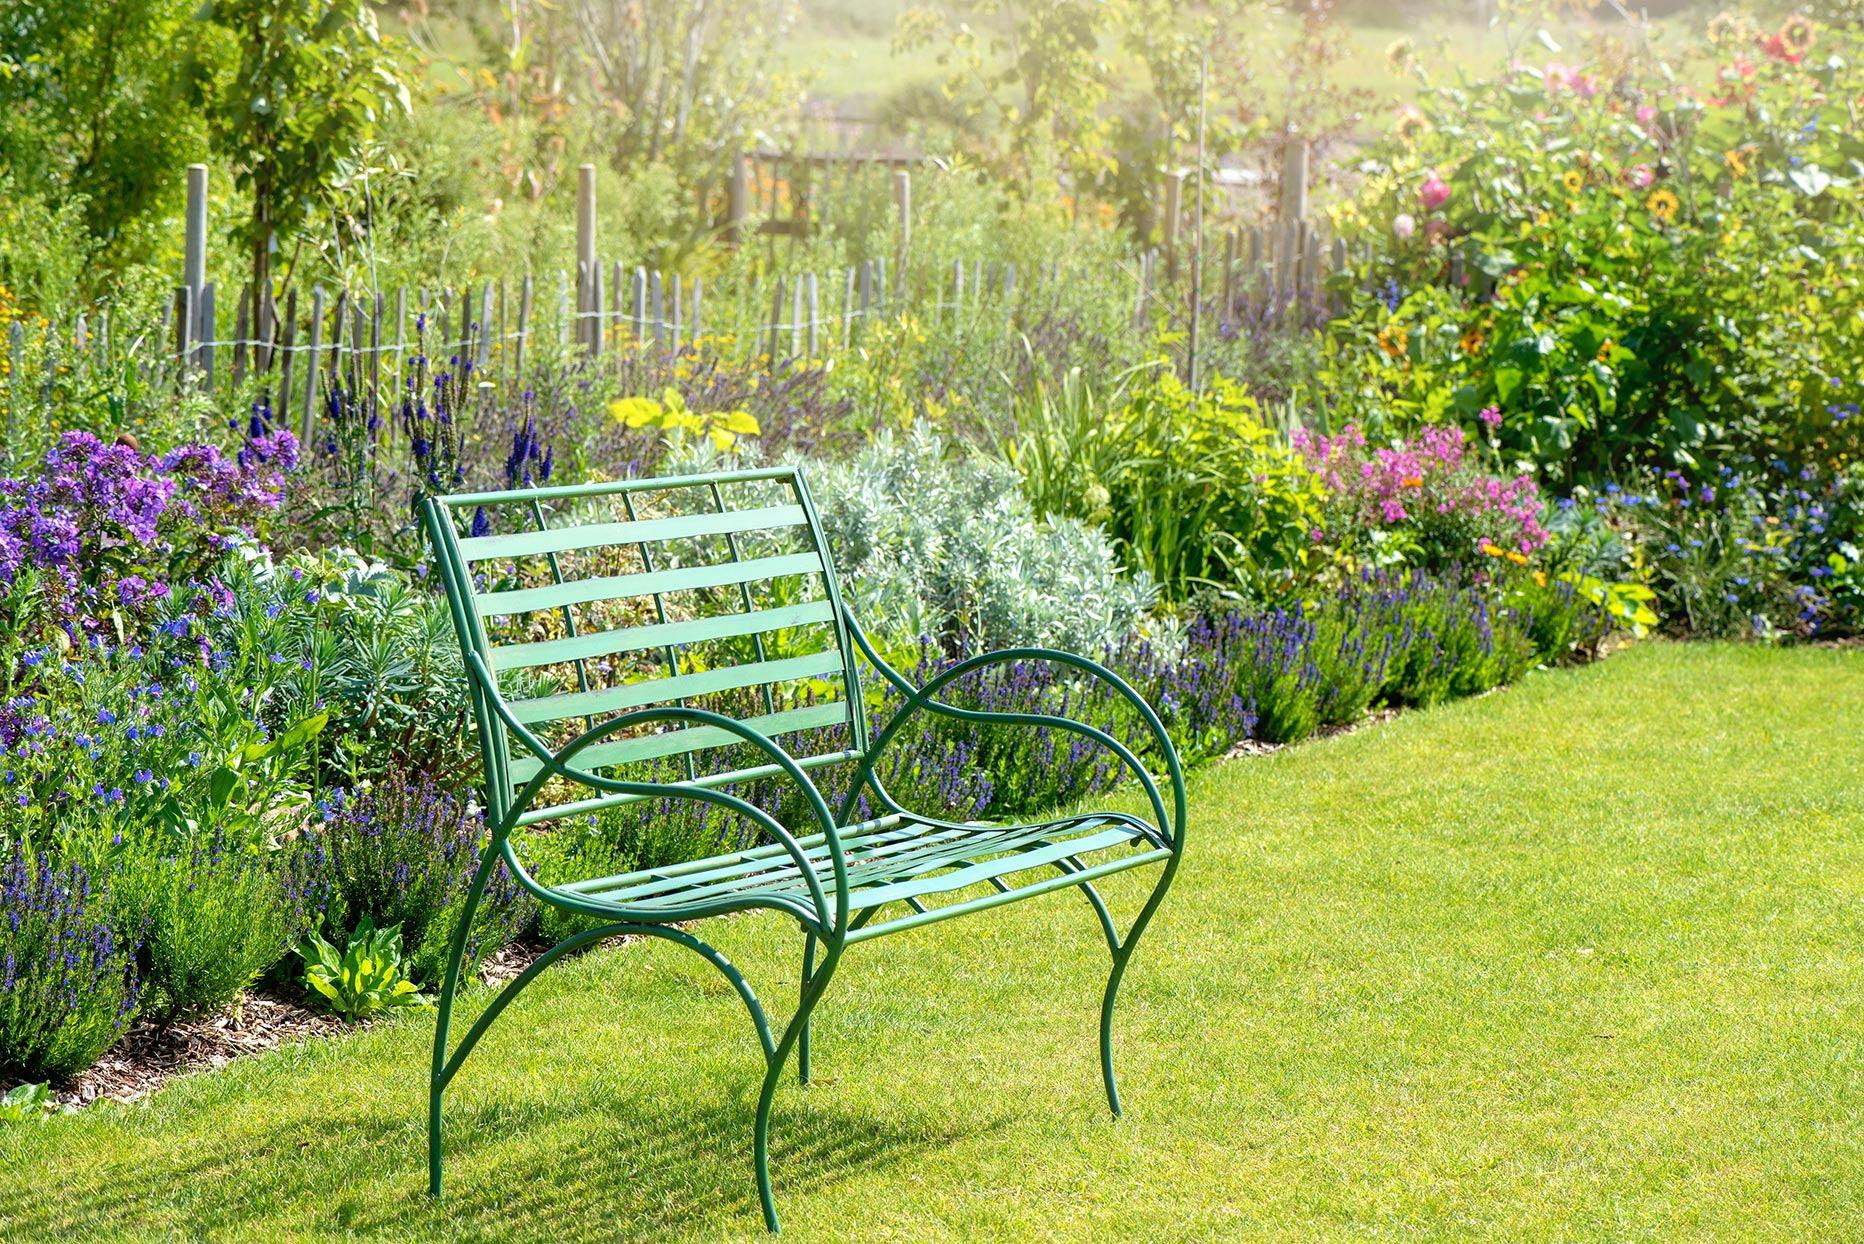 green metal bench in garden